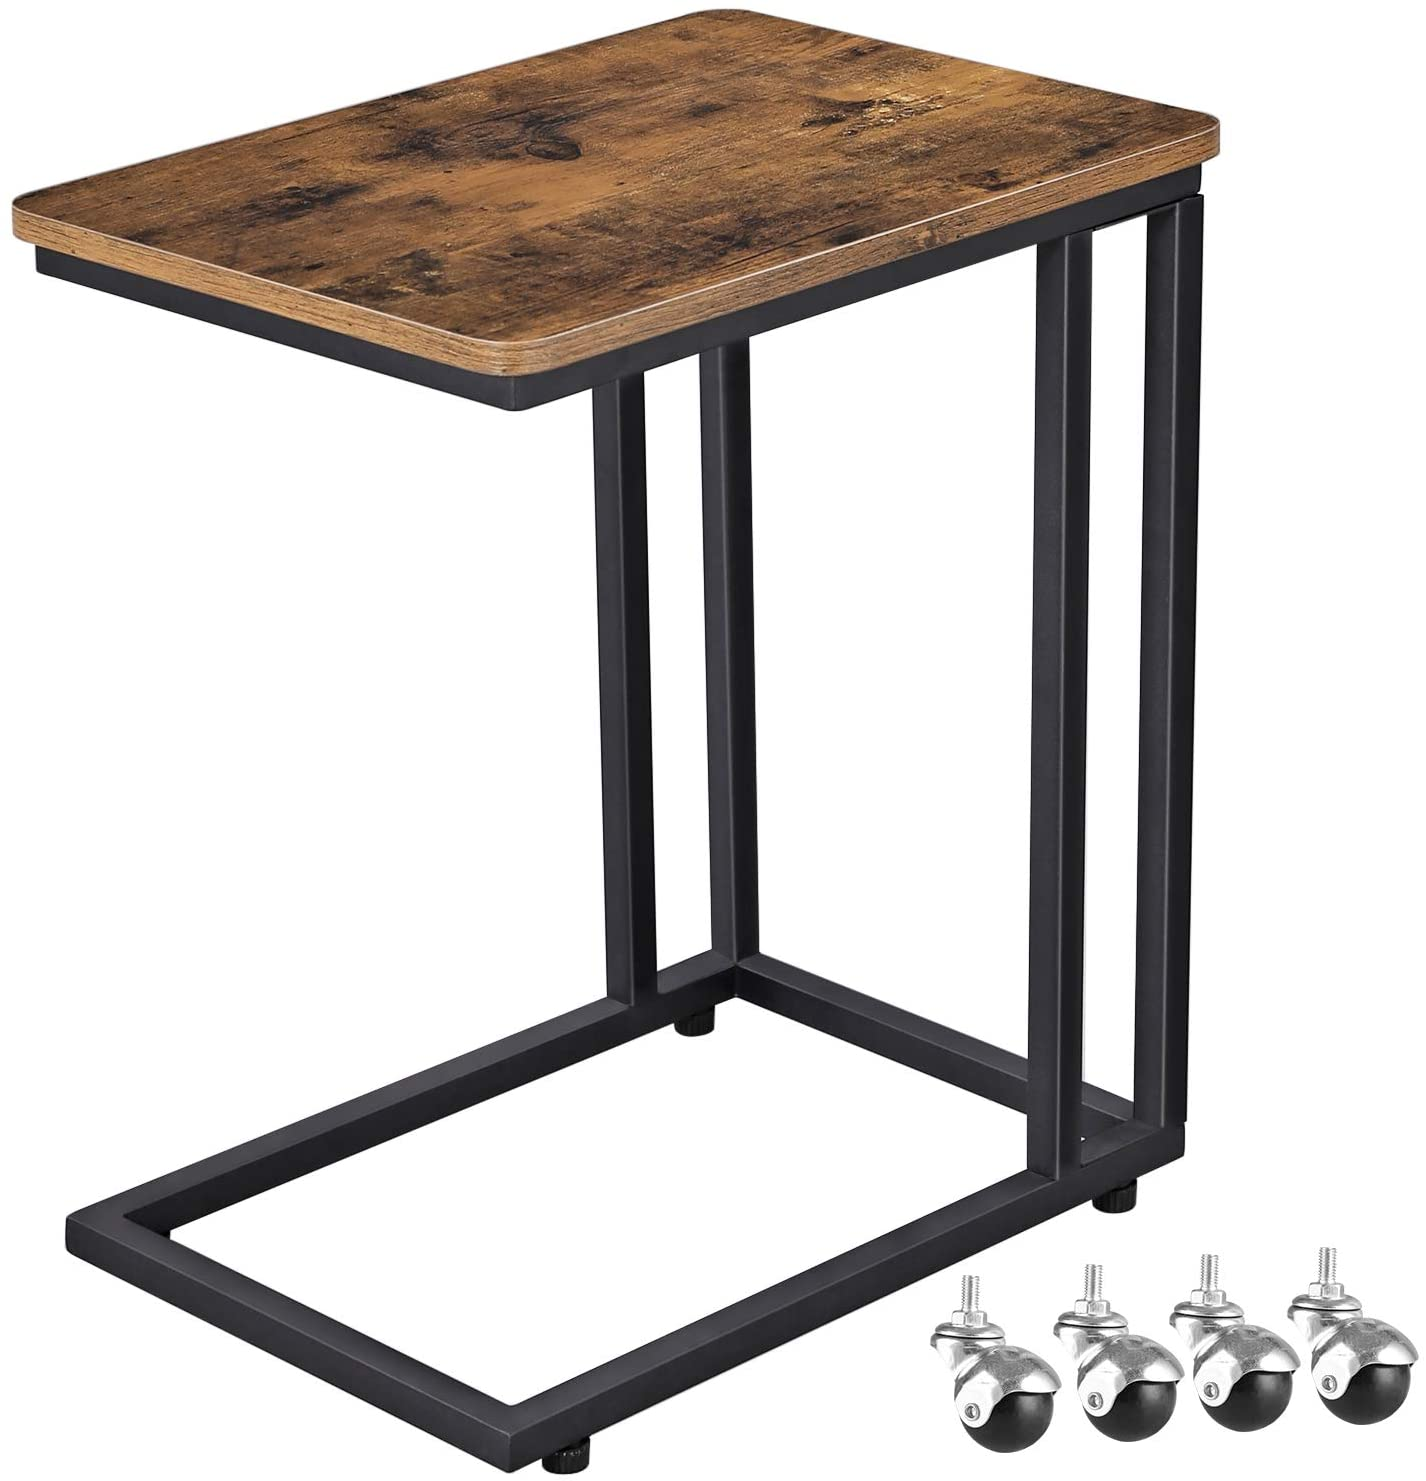 Shop hawkinswoodshop.com for solid wood & metal modern, traditional, contemporary, industrial, custom, rustic, and farmhouse furniture including our Mobile End Table Laptop Desk.  Ask about our free nationwide delivery service.